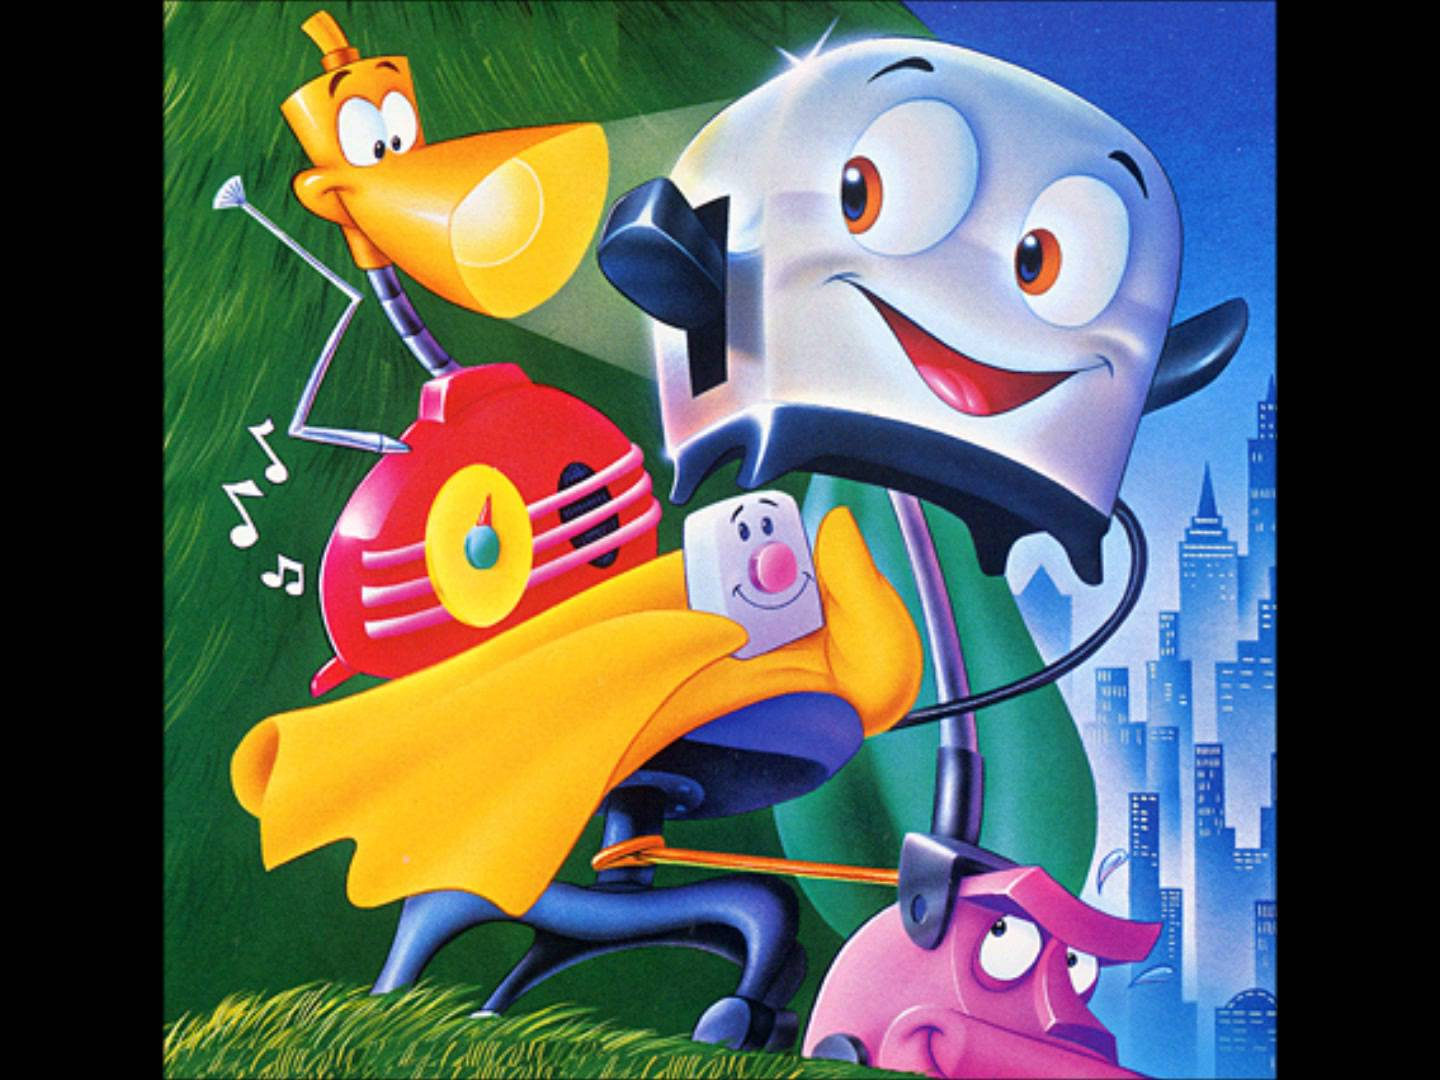 The Brave Little Toaster Wallpapers Movie Hq The Brave Little Toaster Pictures 4k Wallpapers 2019